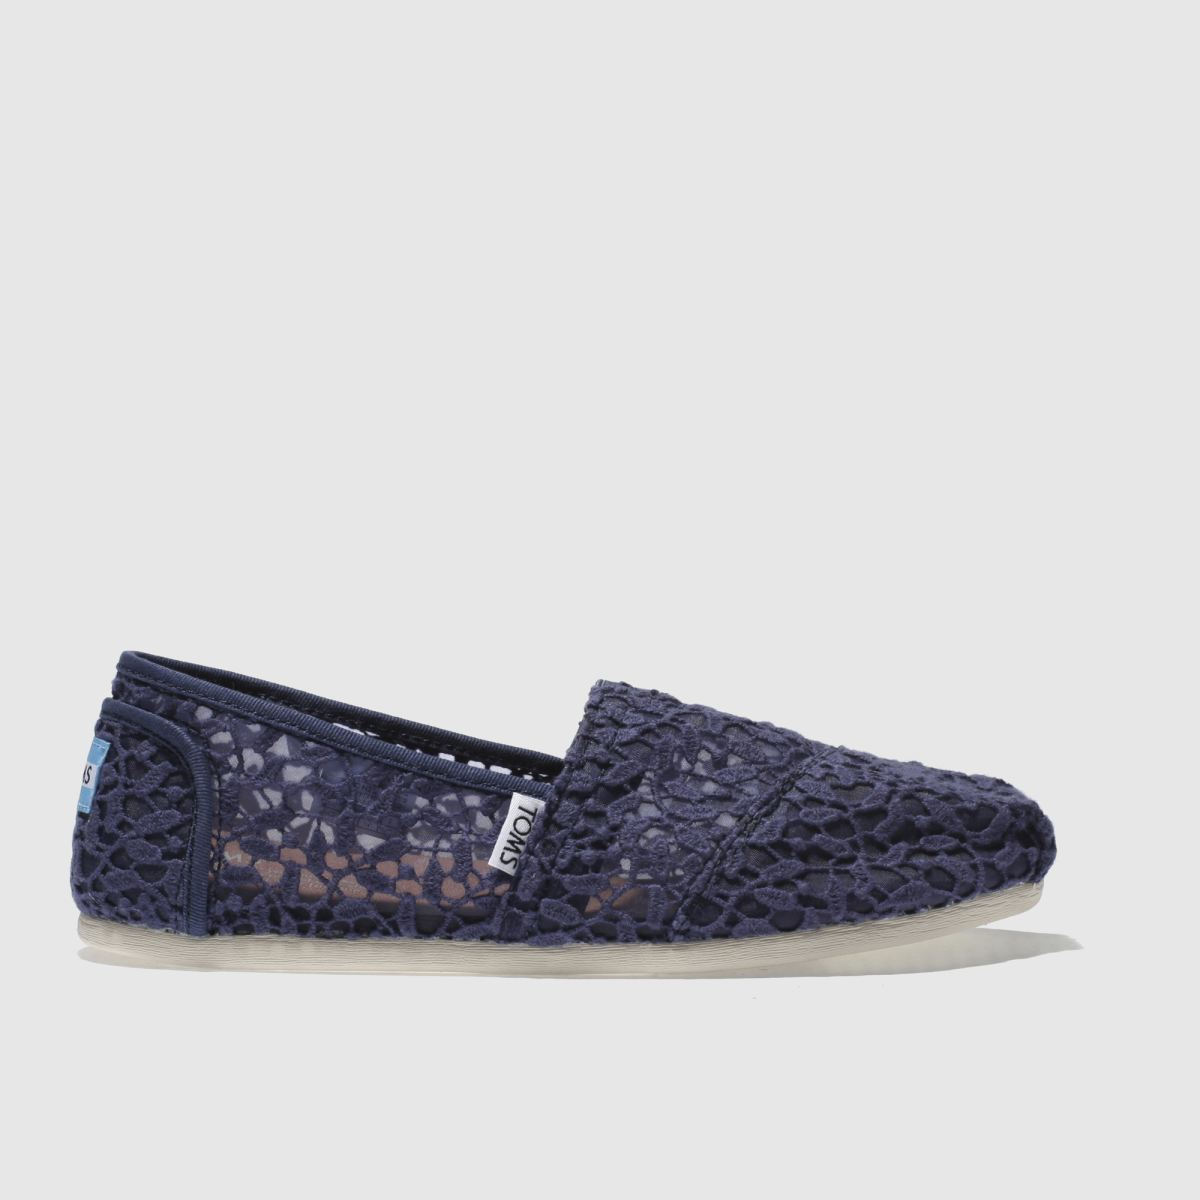 Toms Navy Classic Slip Lace Leaves Flat Shoes